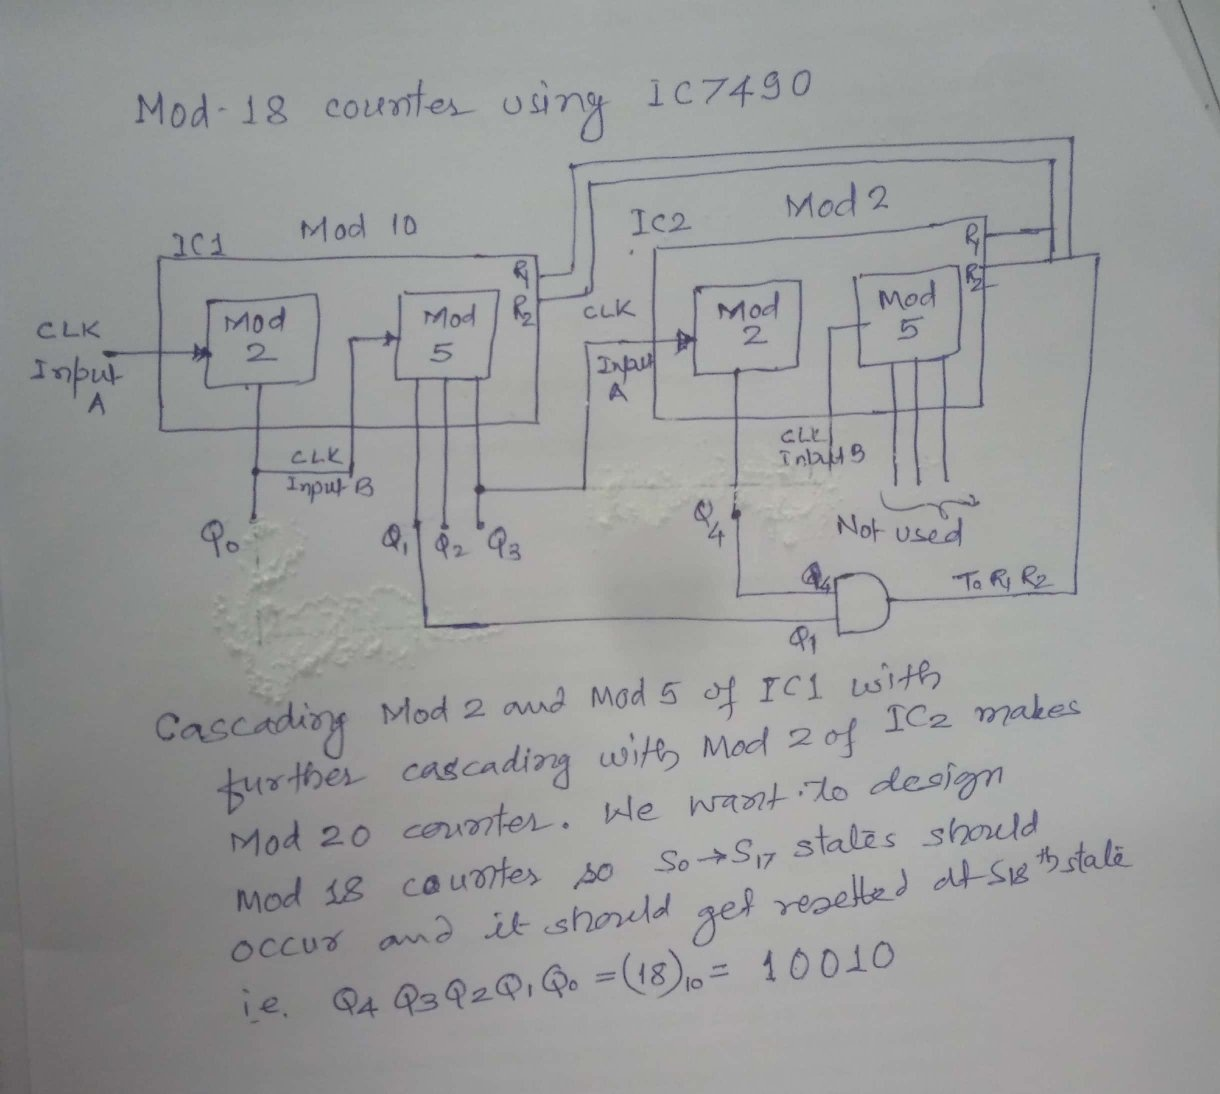 How to design a mod 18 asynchronous counter by the reset and